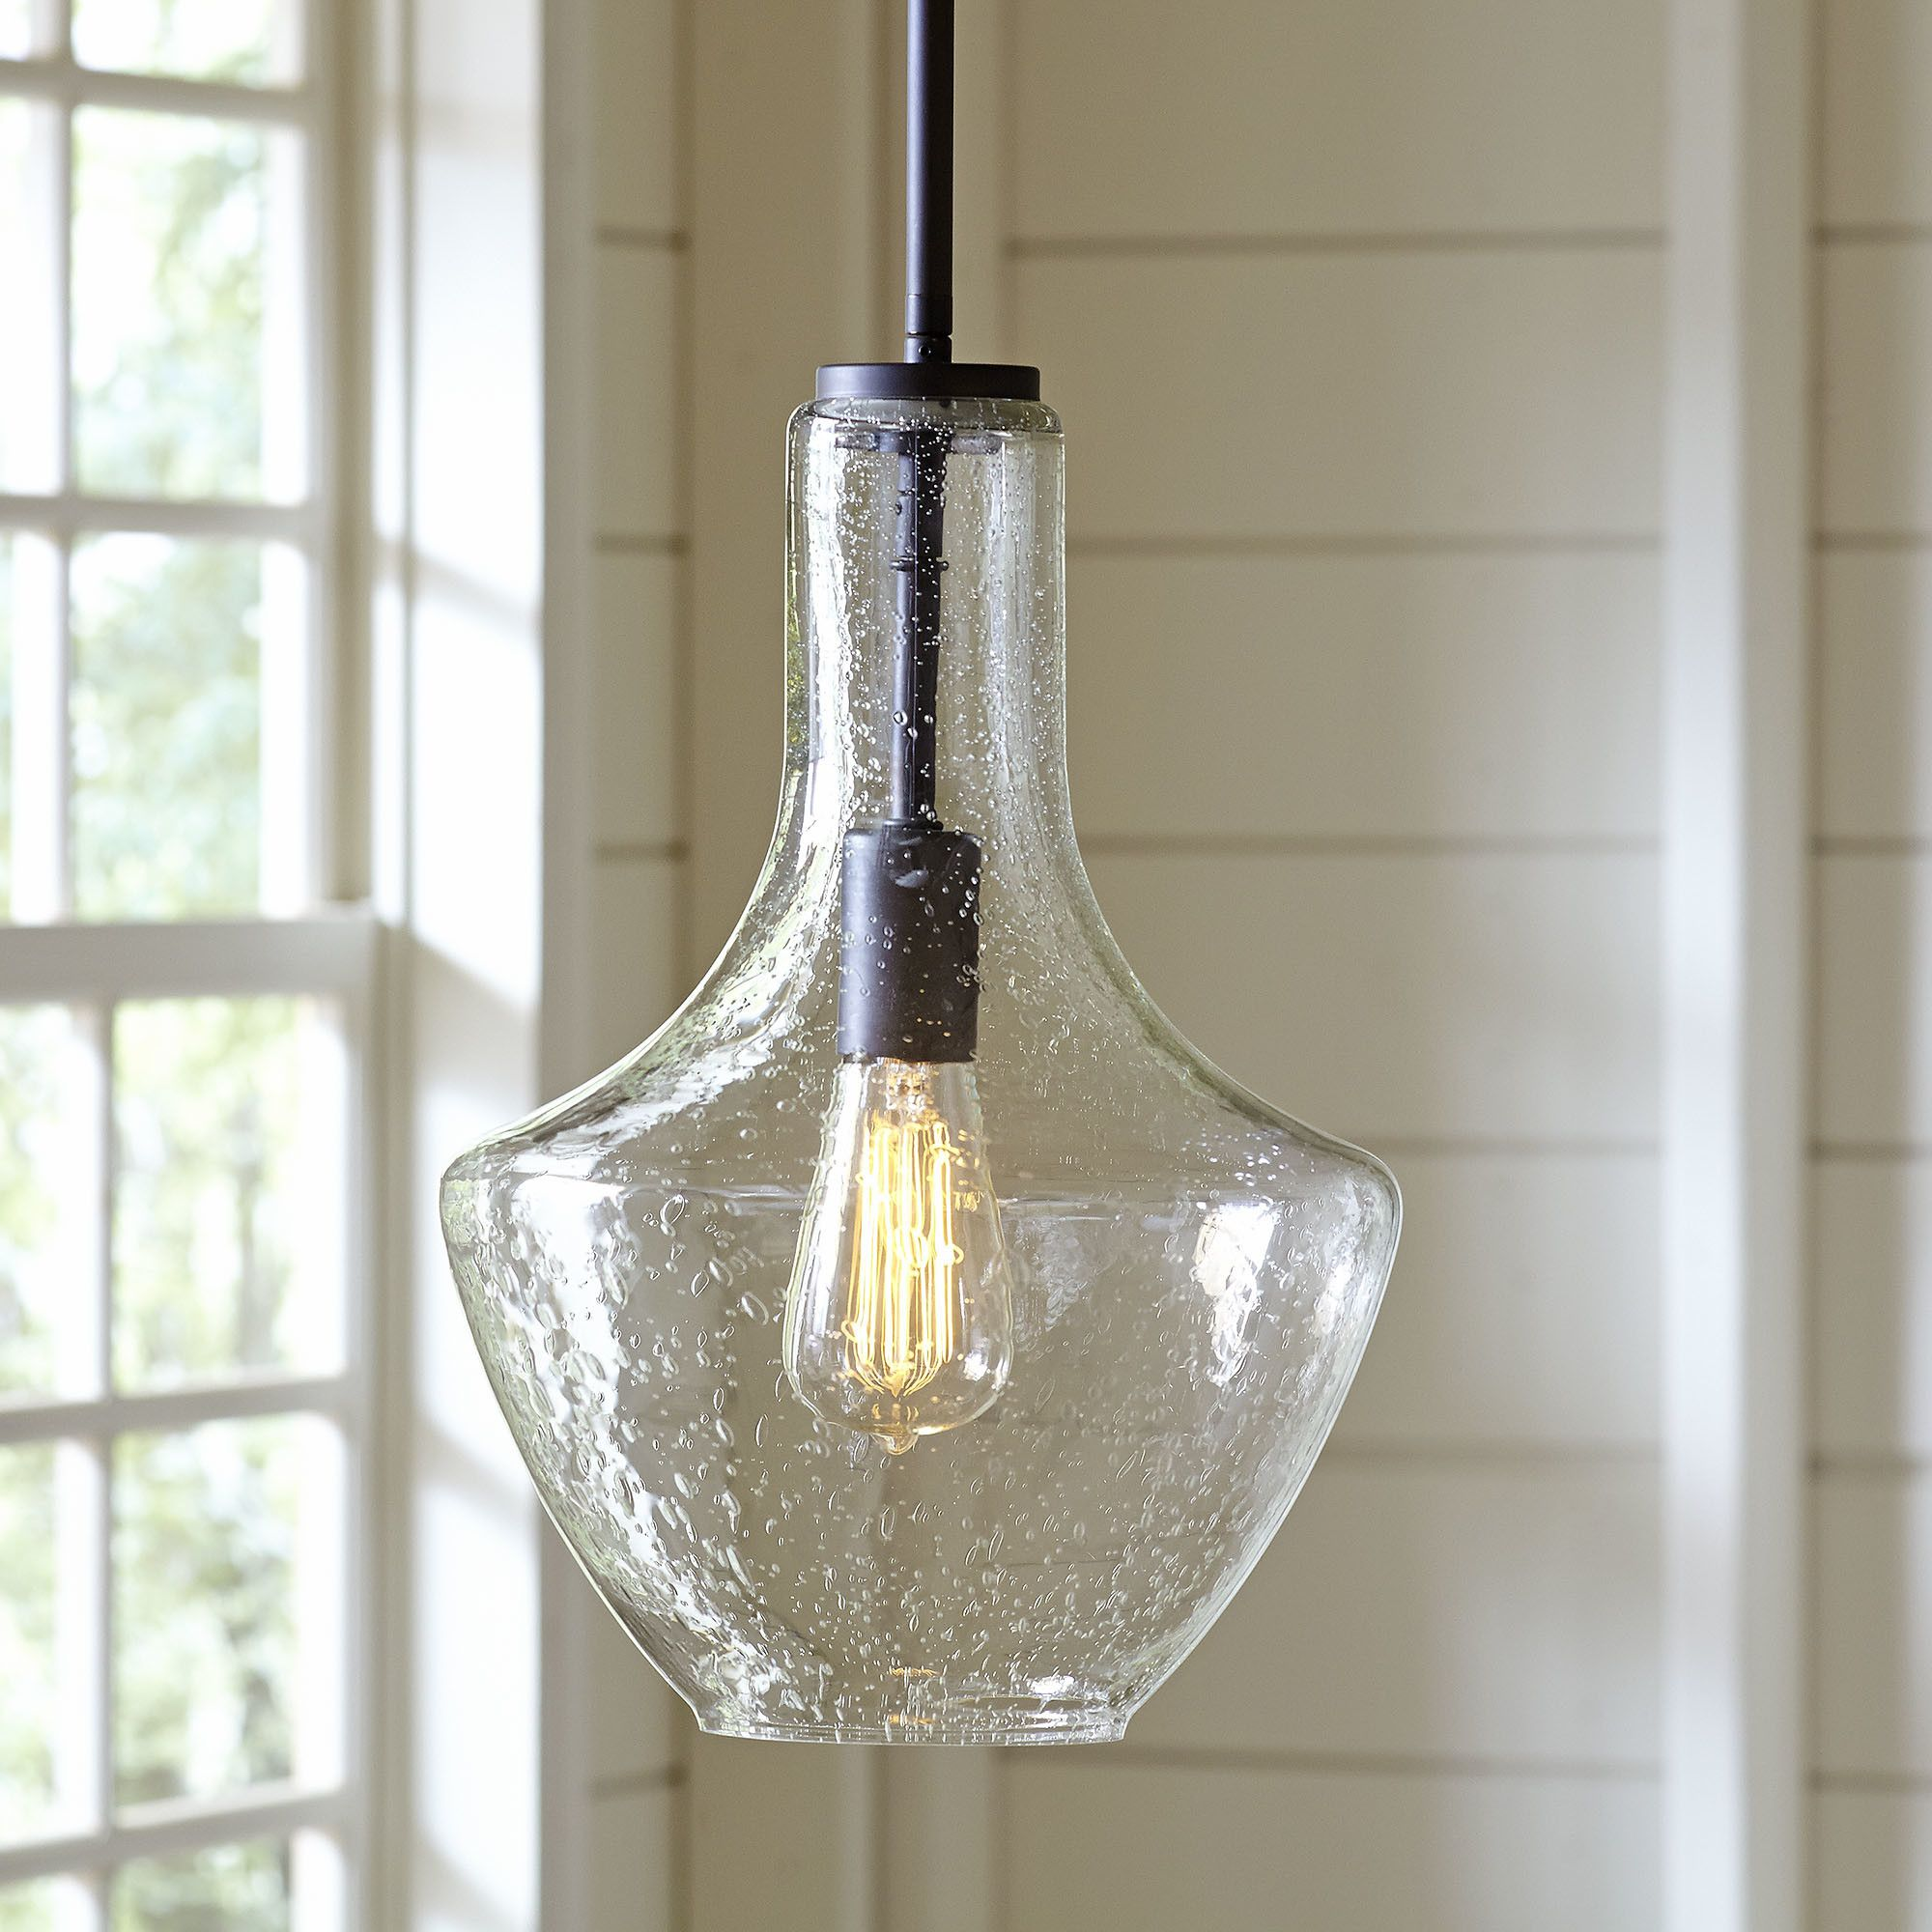 Sutton Pendant Seeded Glass Seeded Glass Pendant Glass Pendant Light Glass Pendants